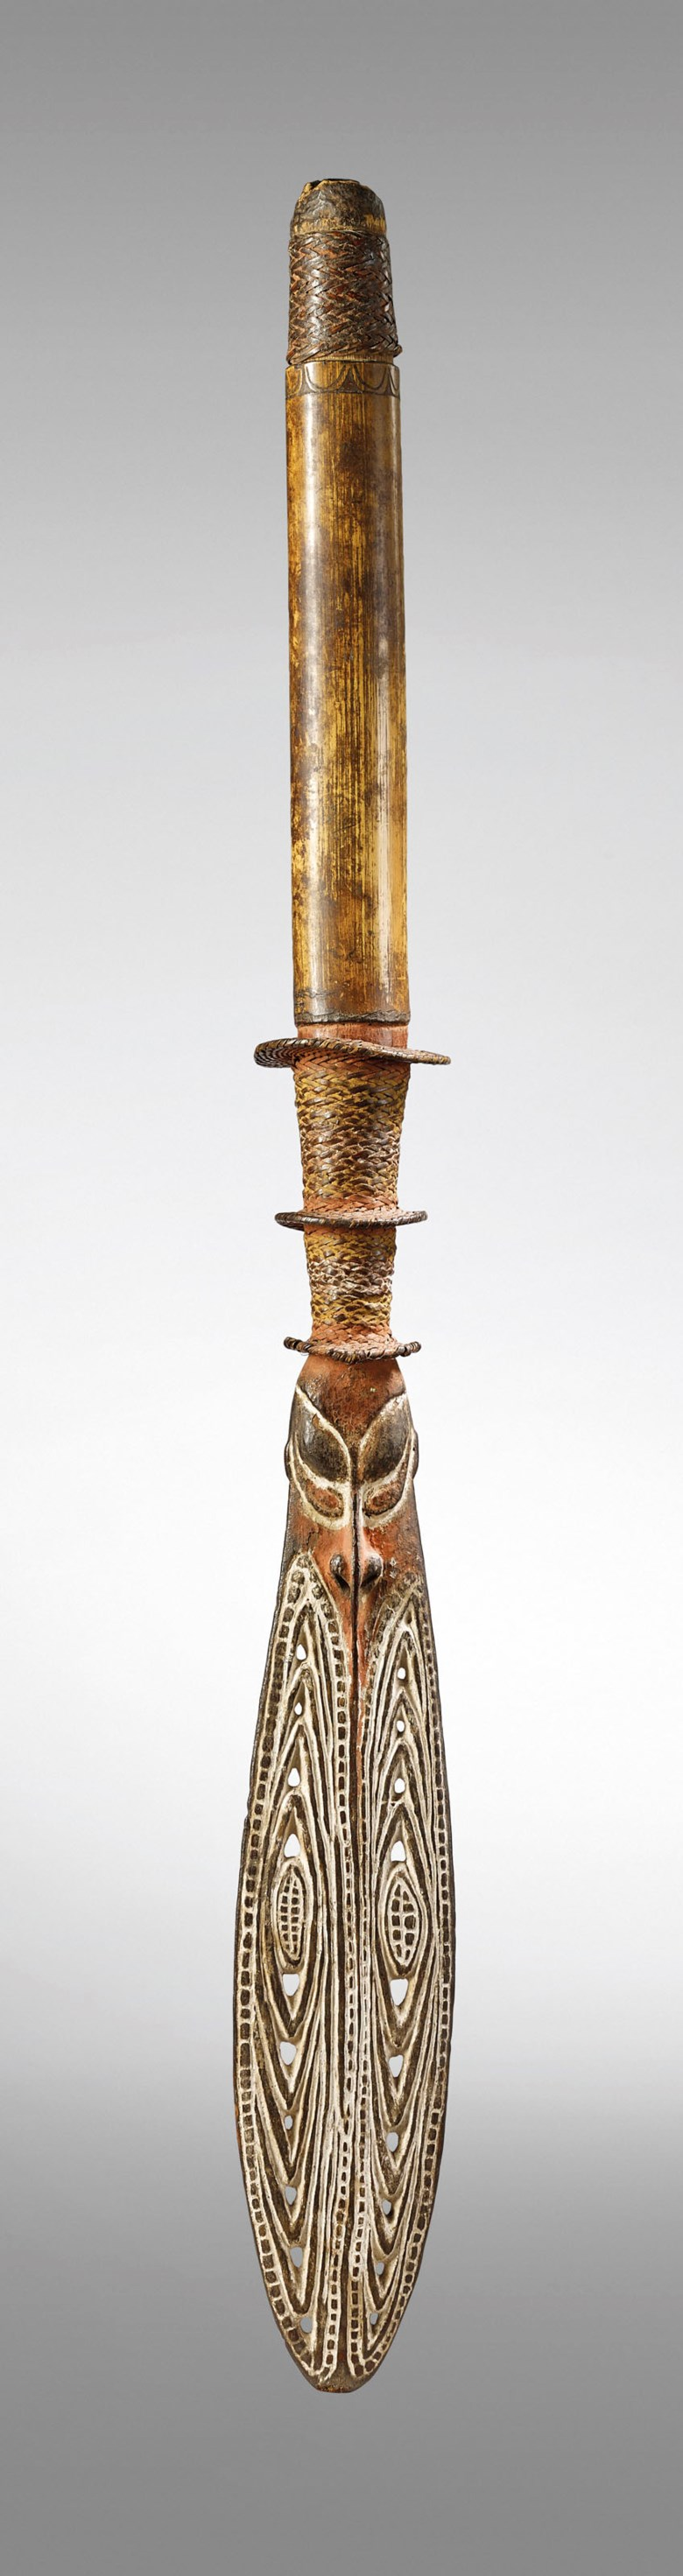 An Iatmul lime gourd, Middle Sepik region, Papua New Guinea. Height 75  cm (29½  in). Estimate €30,000-50,000. Offered in Art from Africa, Oceania and North America on 10 April 2019 at Christie's in Paris